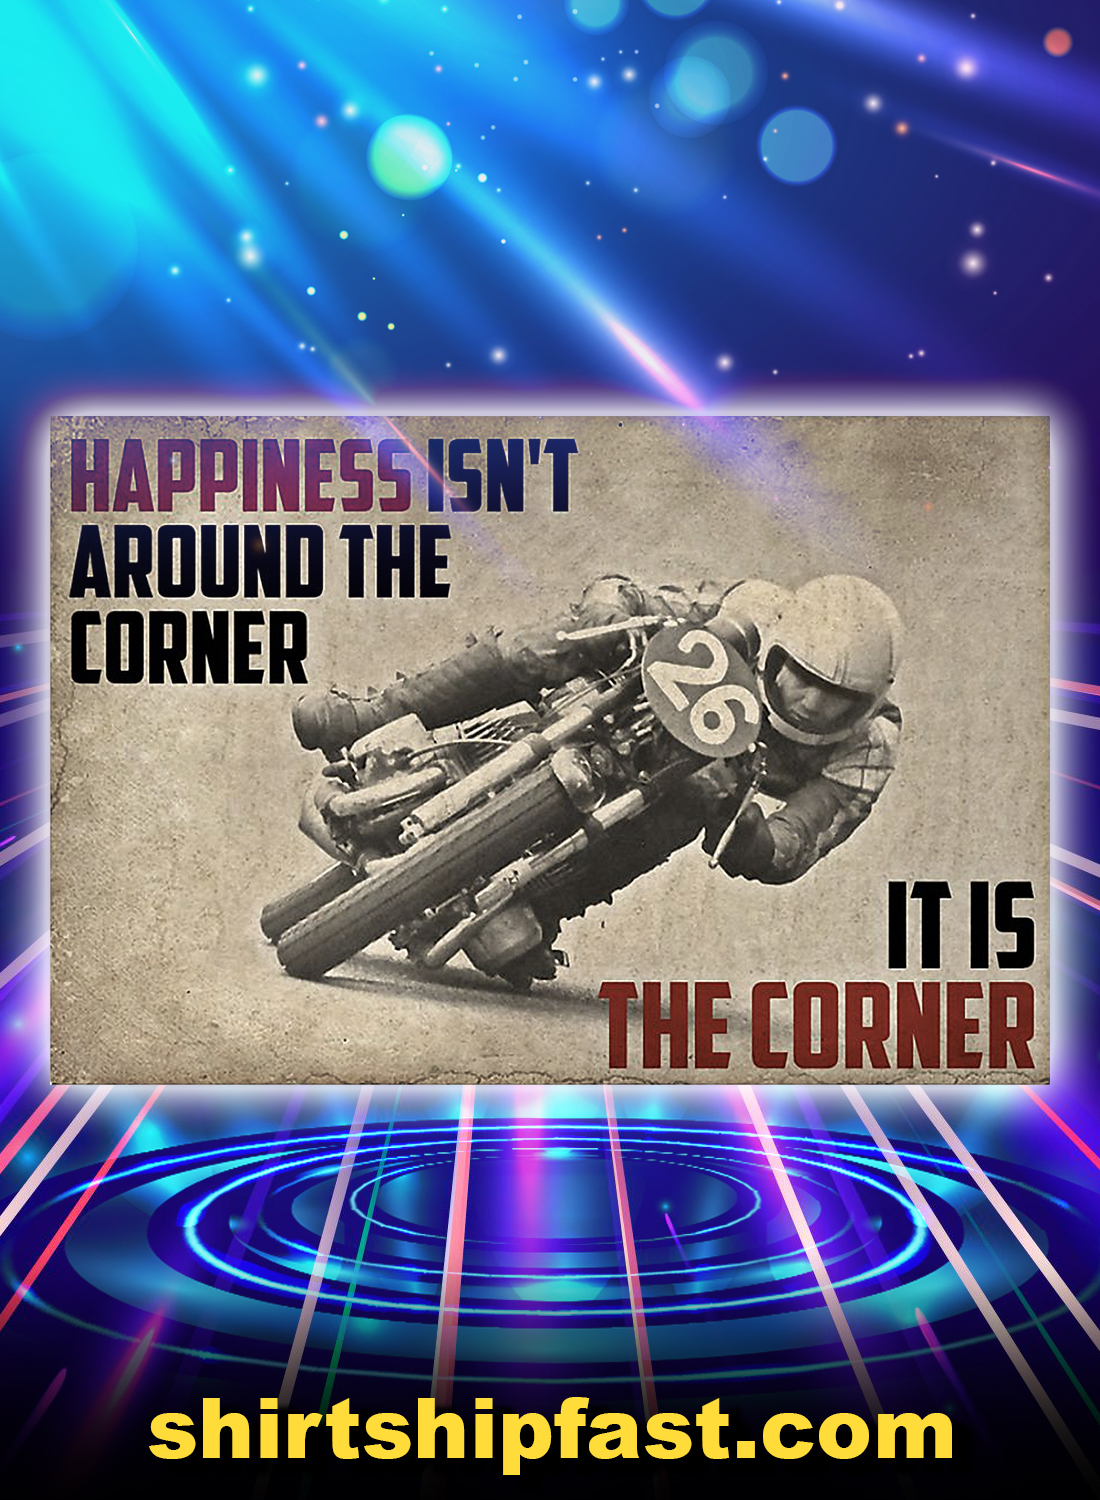 Motorcycle happiness isn't around the corner It is the corner poster - A4